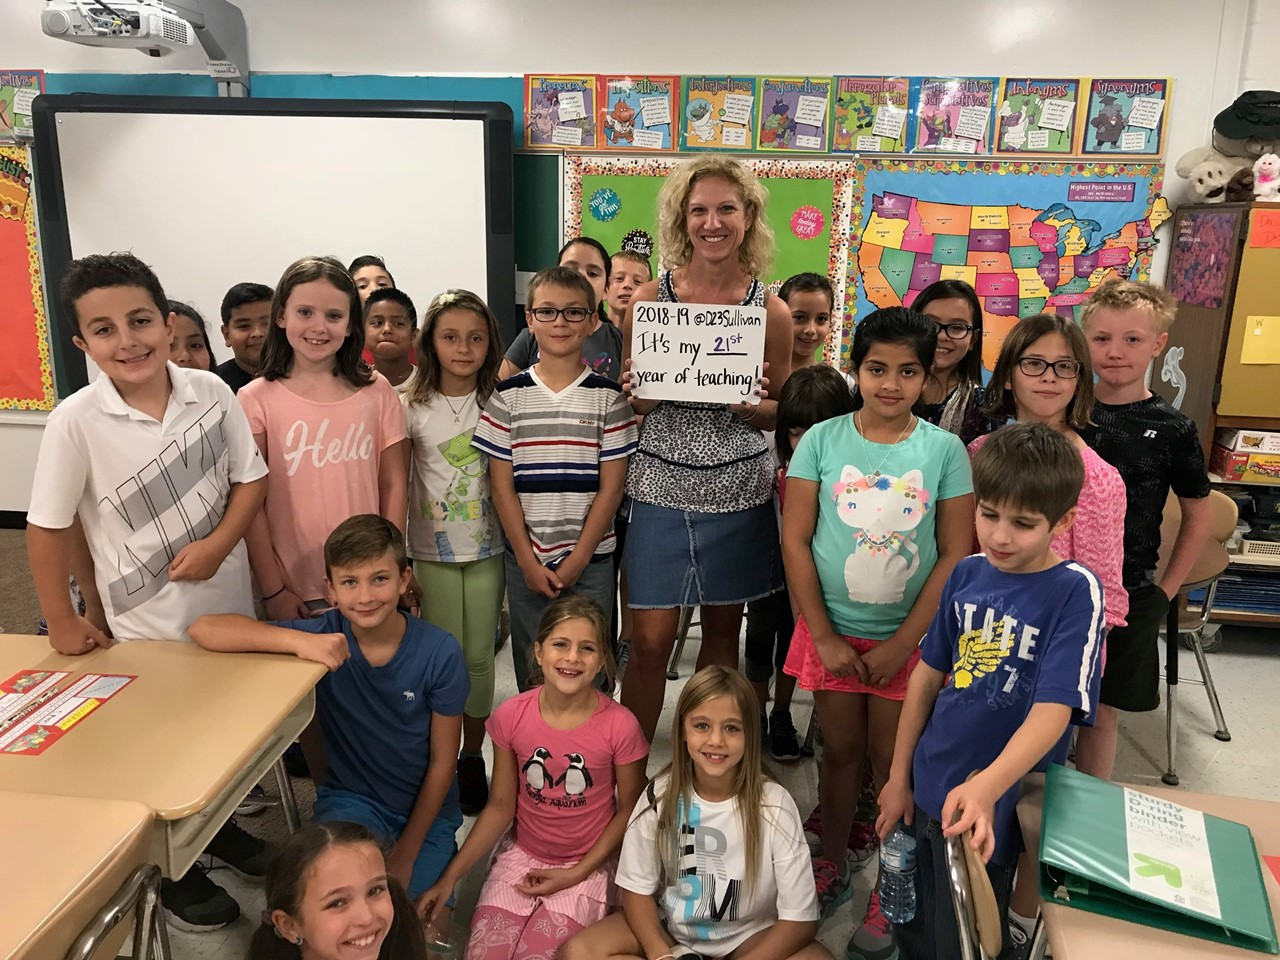 Mrs. Brusso's 4th Grade Class from the start of the year